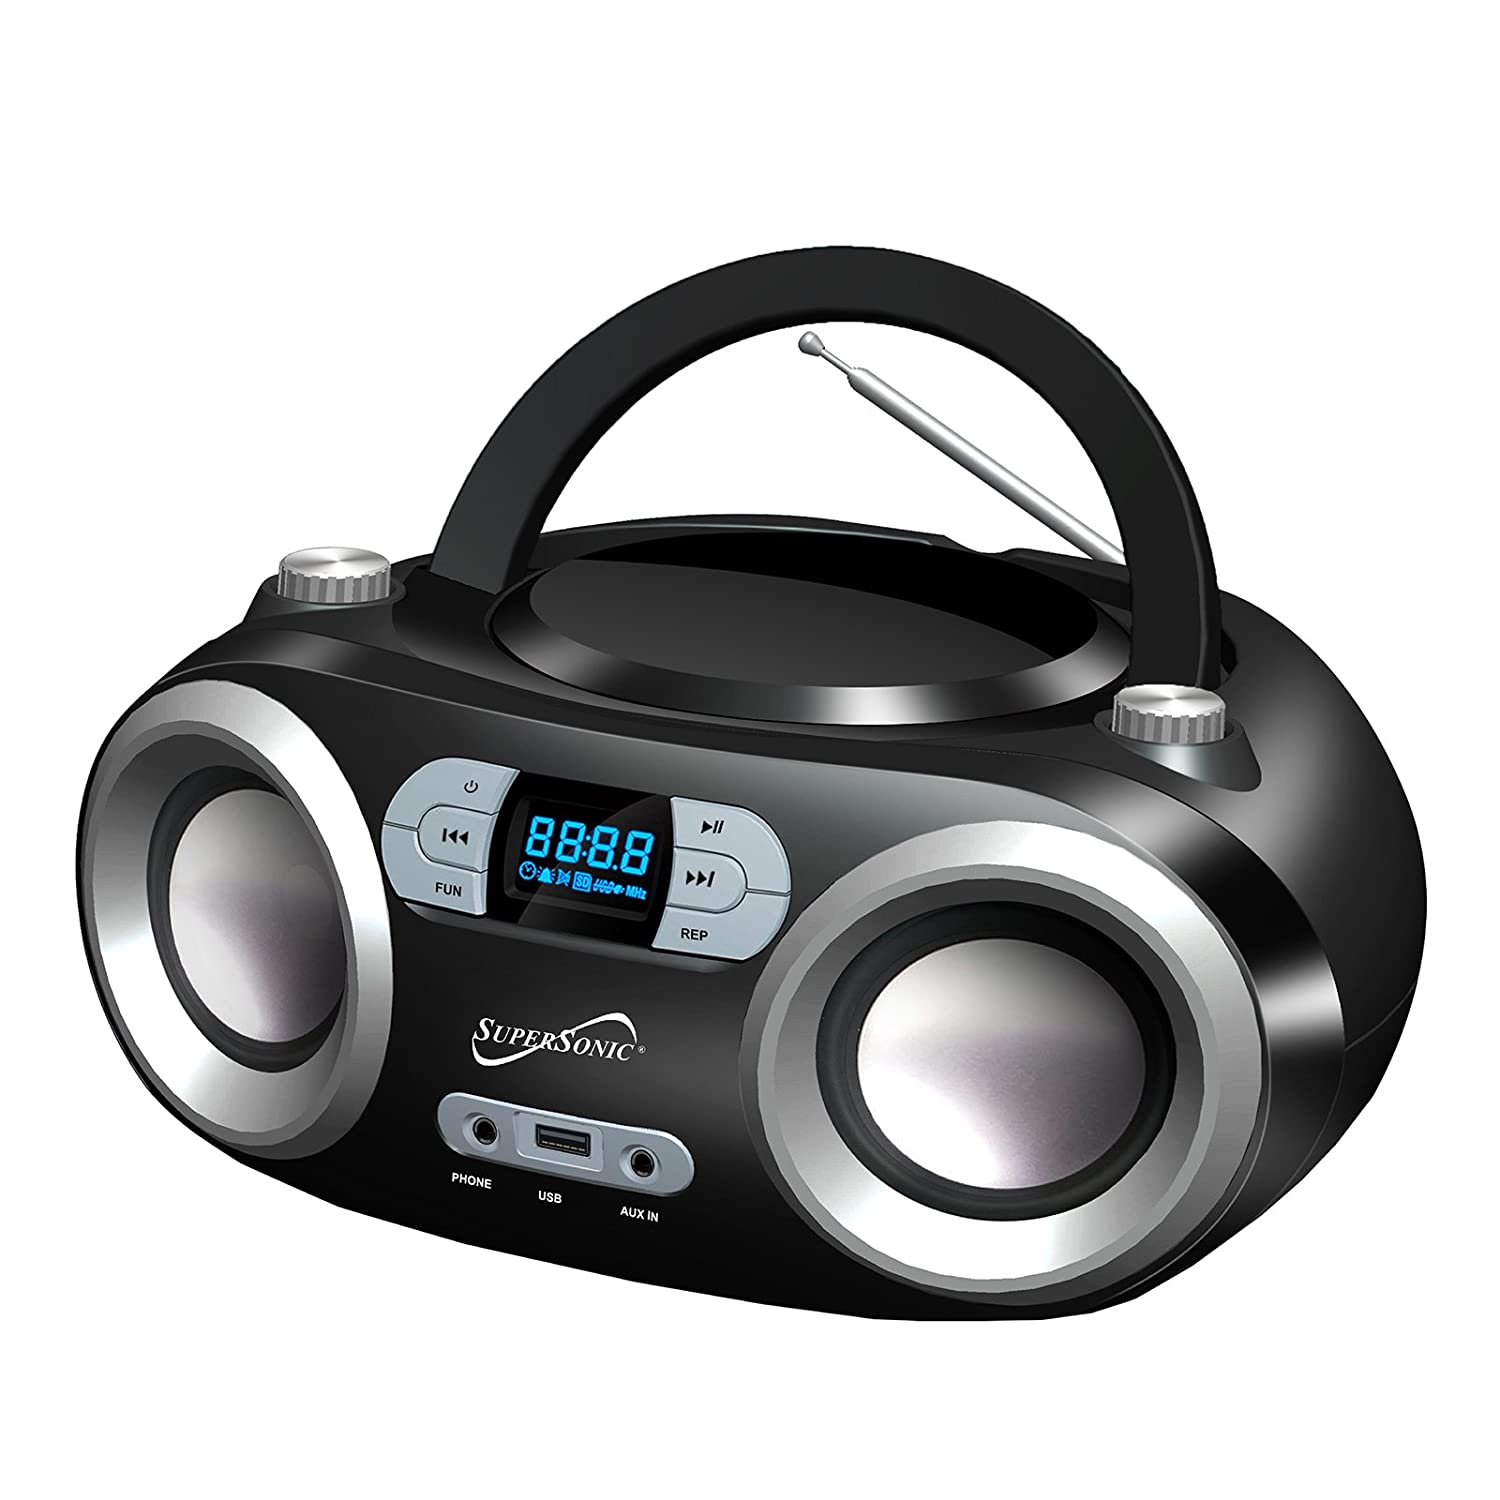 supersonic portable bluetooth audio system with mp3 cd. Black Bedroom Furniture Sets. Home Design Ideas